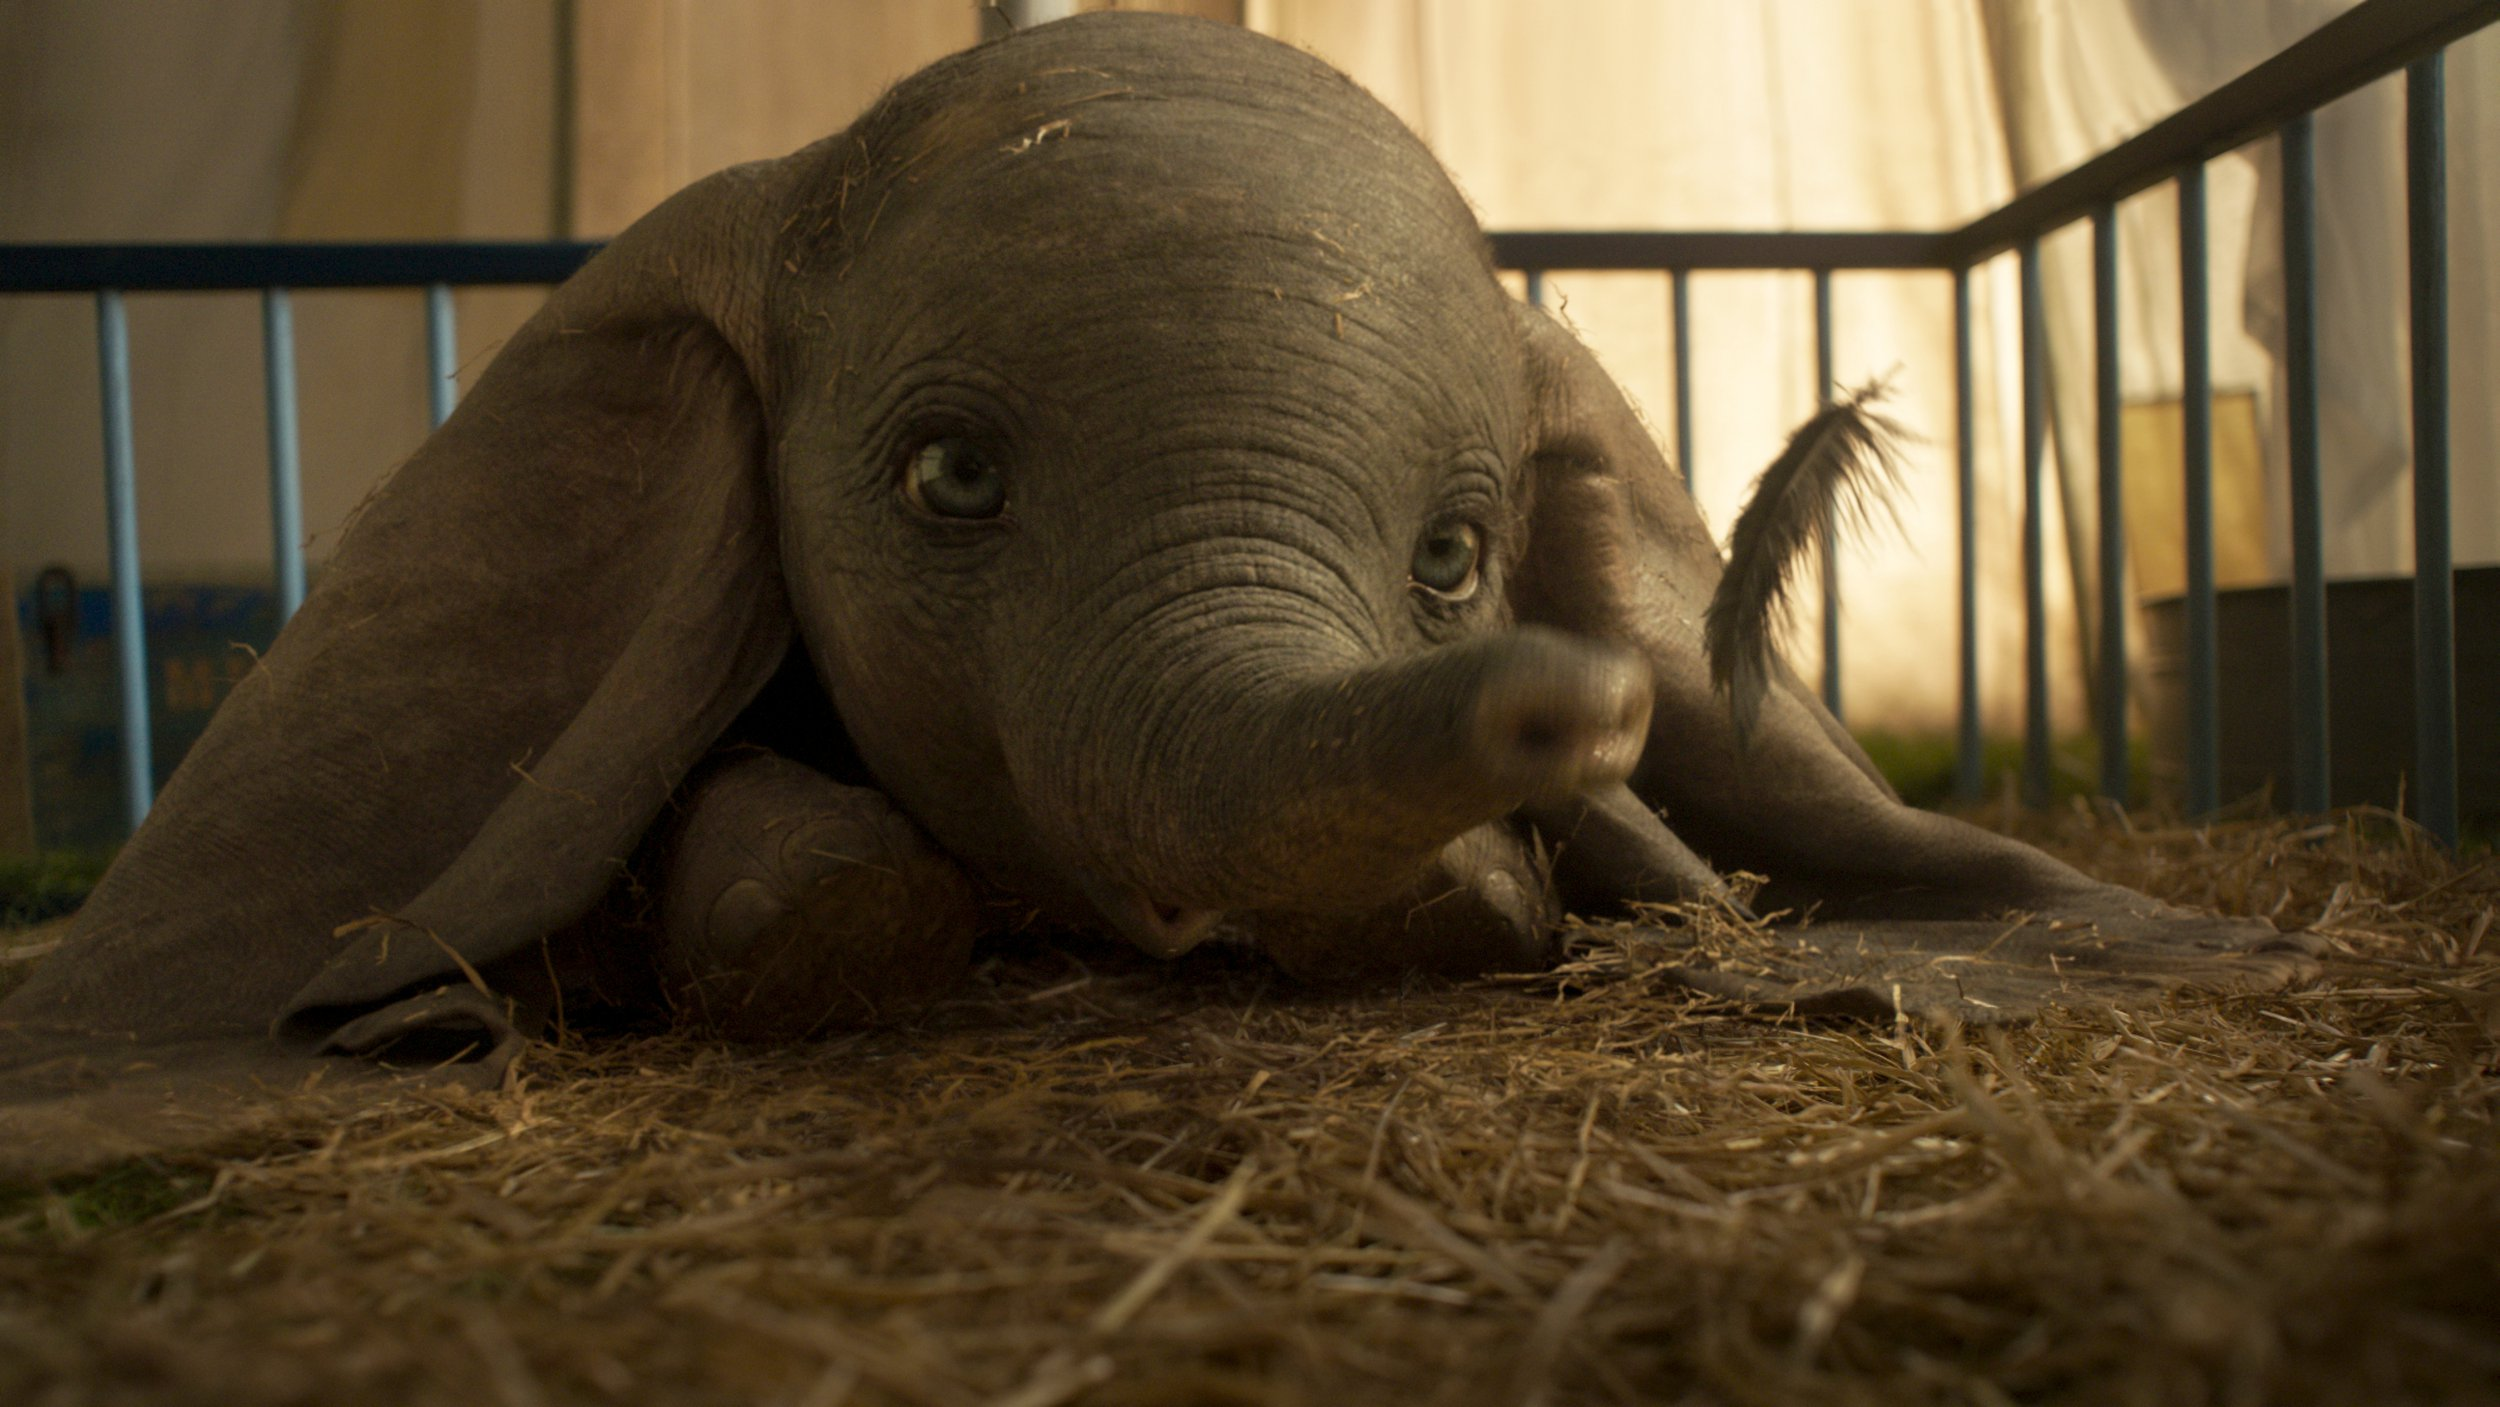 Dumbo 2019 trailer, cast, and UK release date – everything you need to know